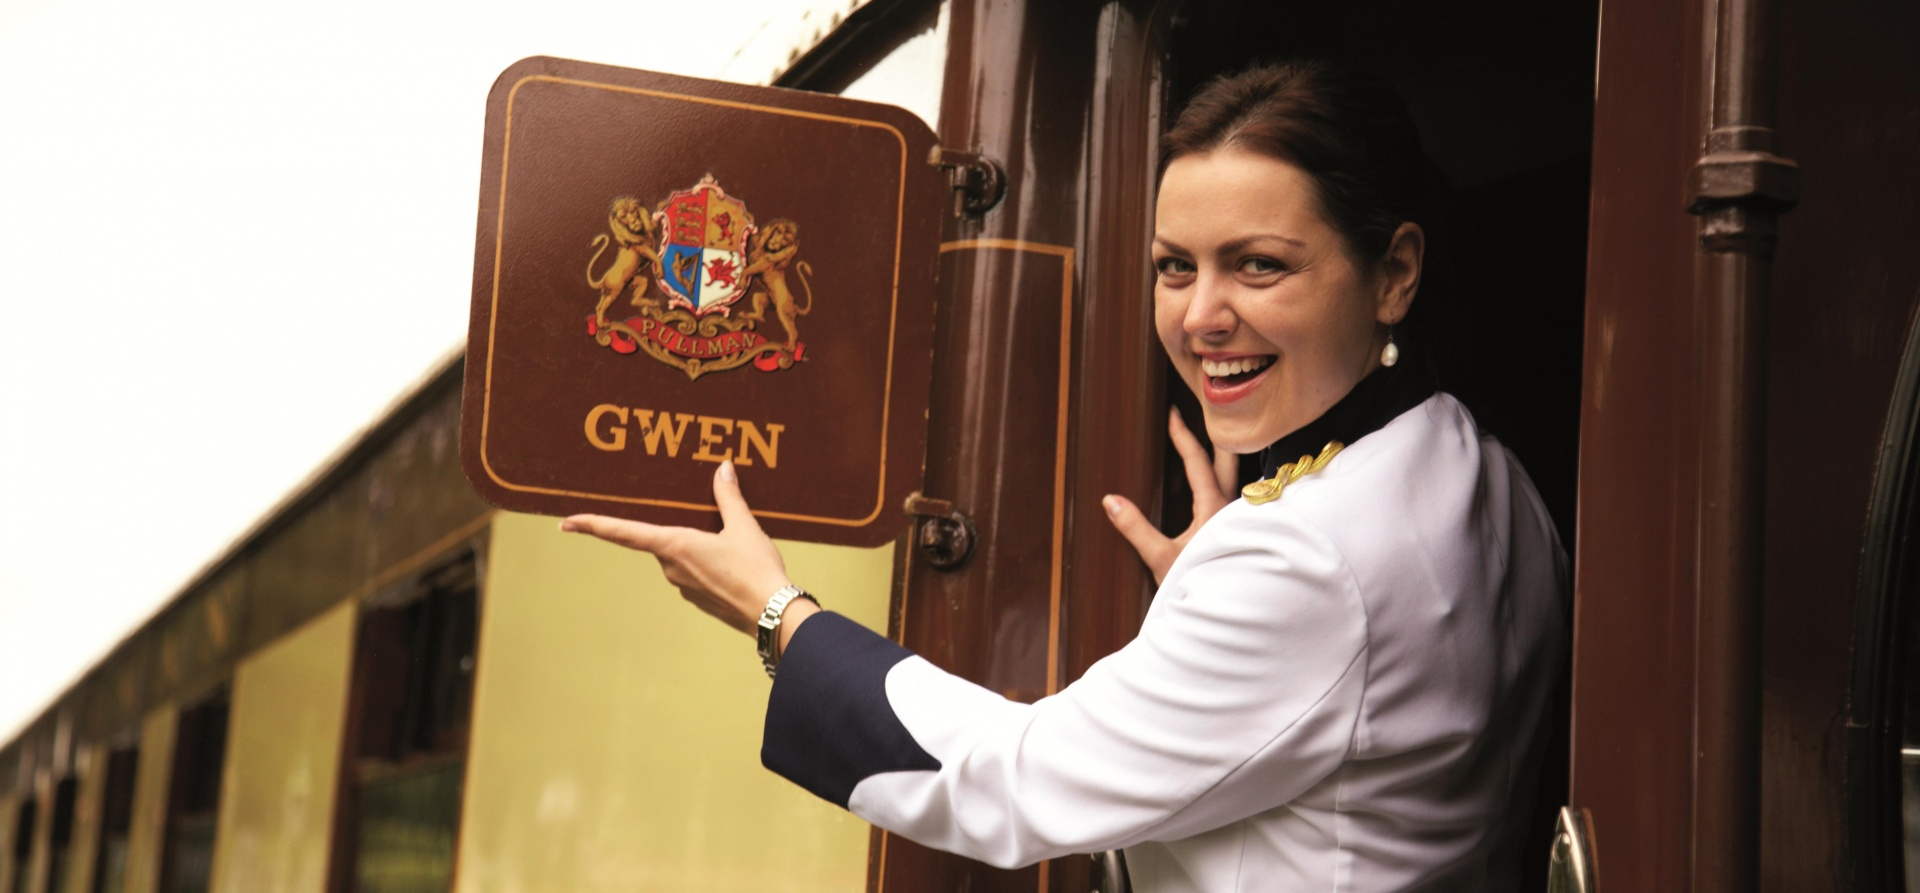 Day Excursions Aboard The Belmond British Pullman-1